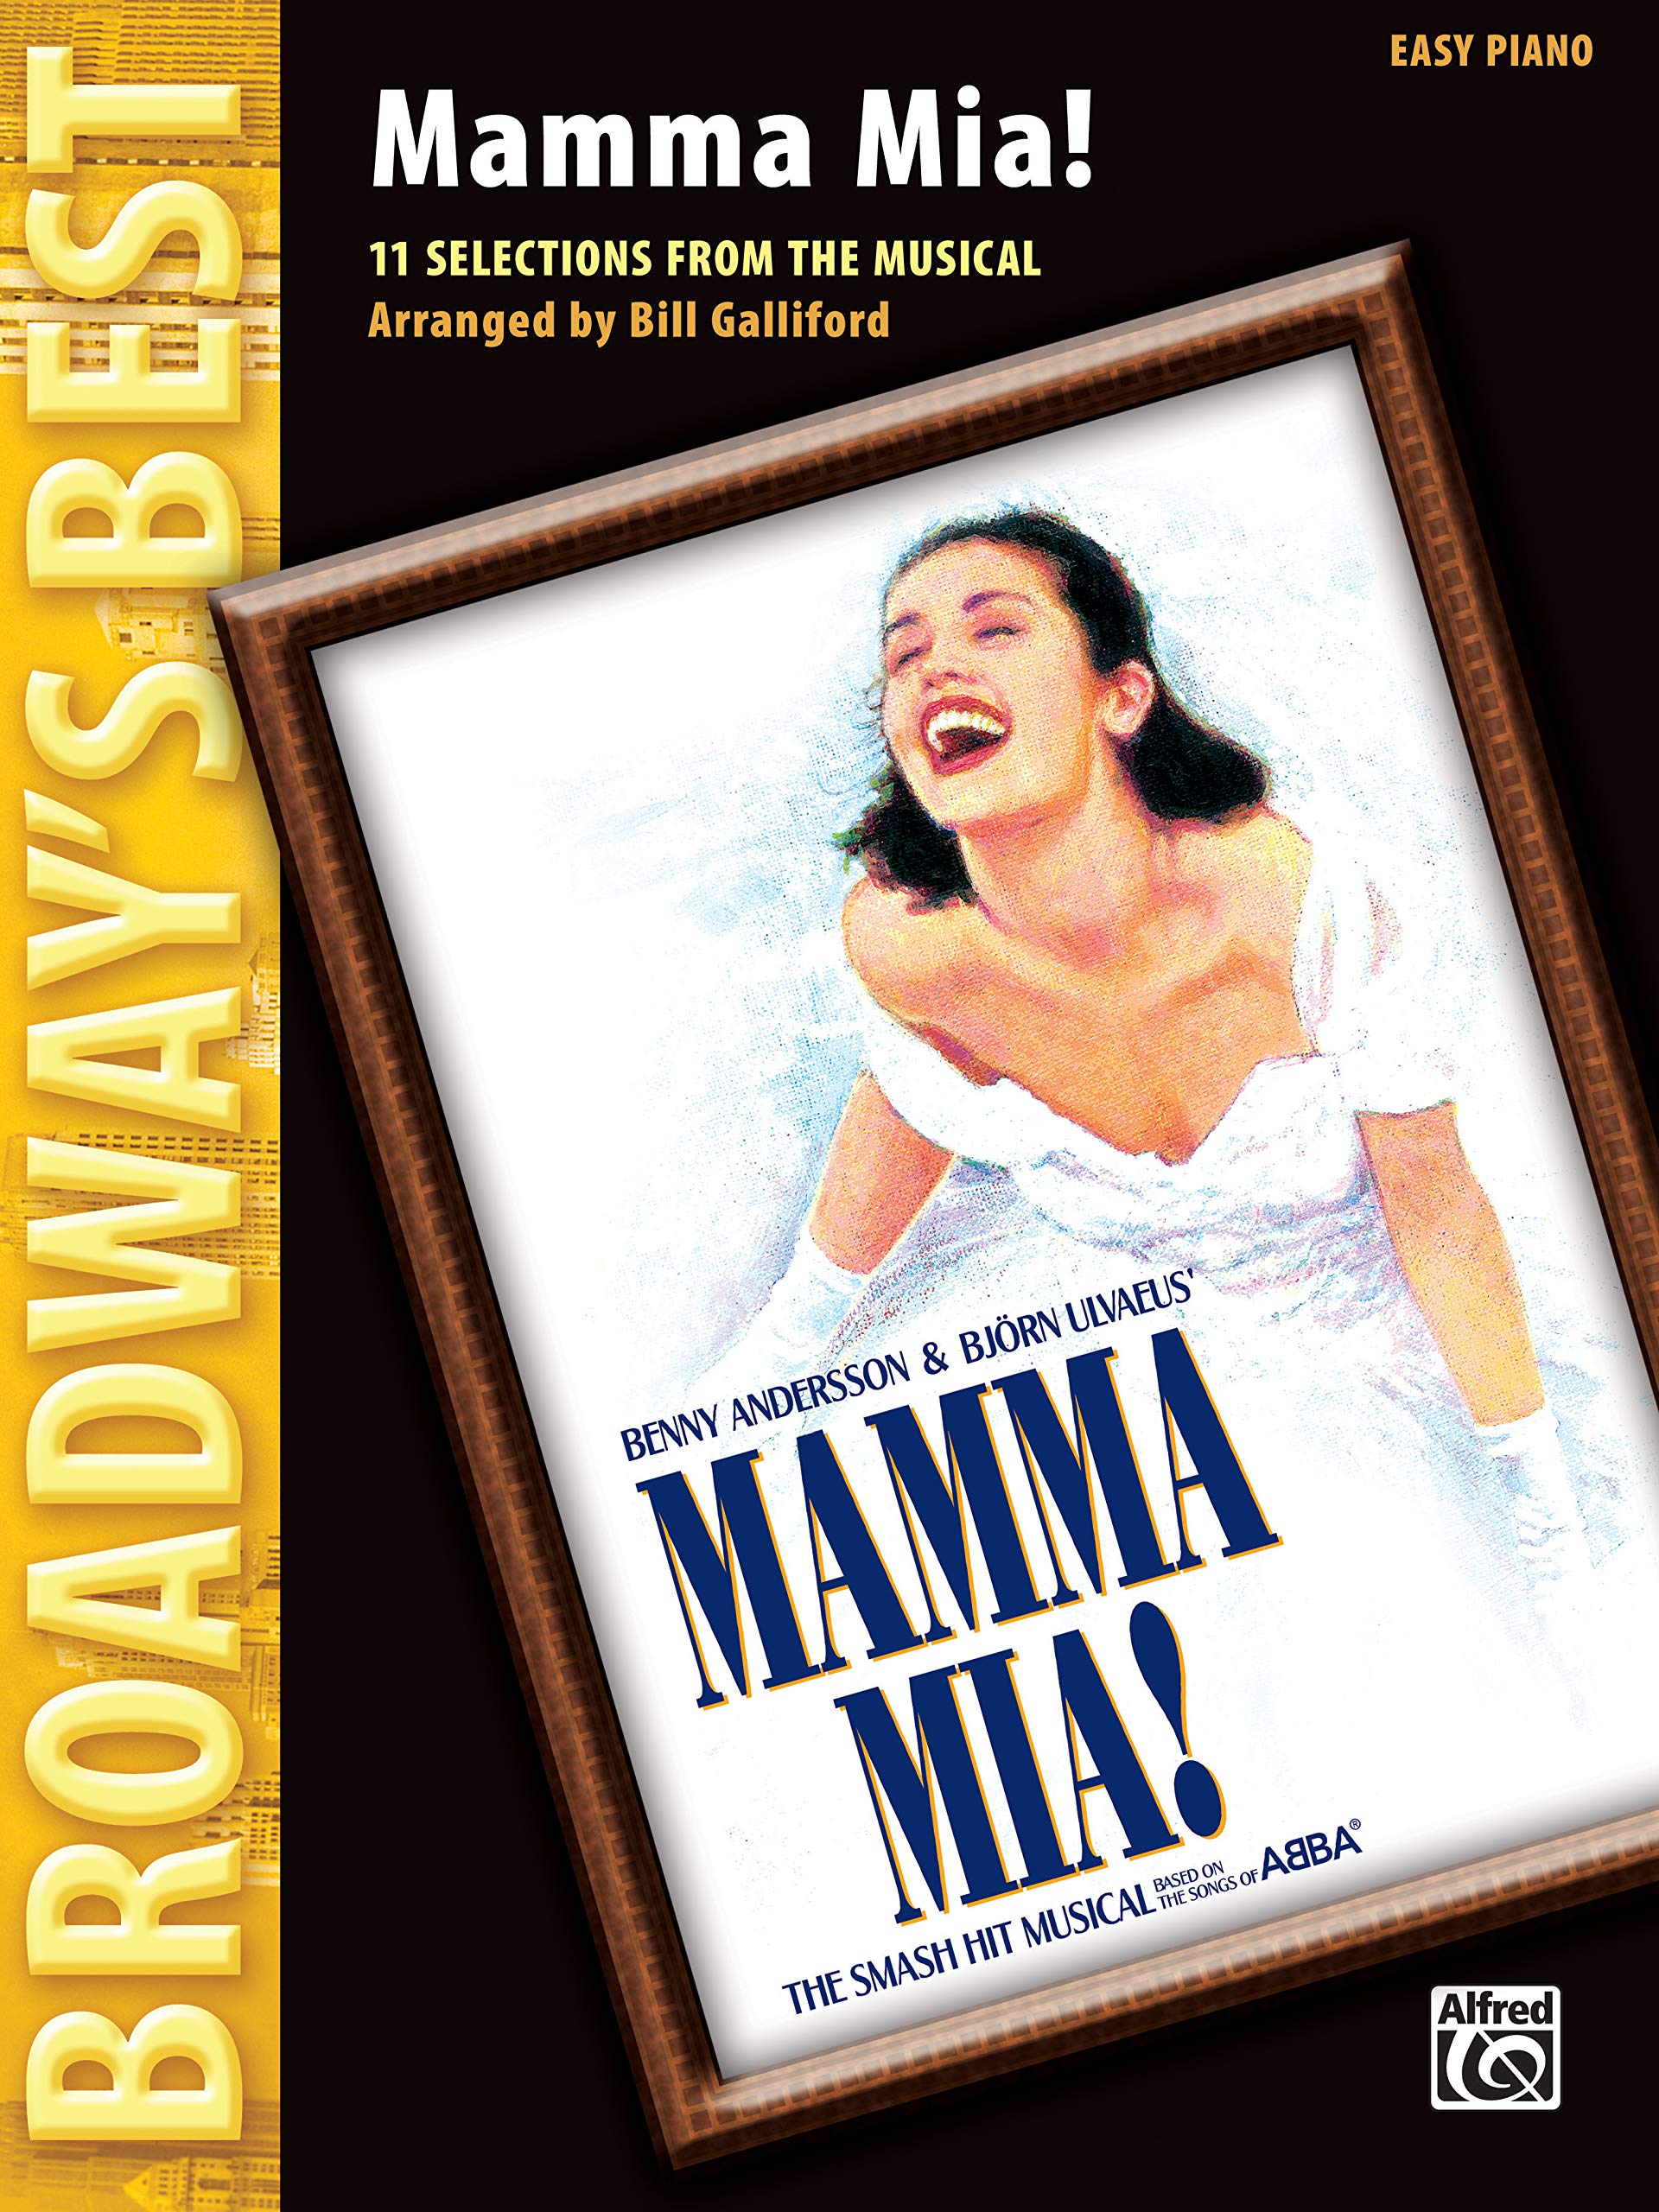 Mamma Mia! (Broadway's Best): Selections from the Musical (Easy Piano):  Benny Andersson, Björn Ulvaeus, Bill Galliford: 0038081304656: Amazon.com:  Books